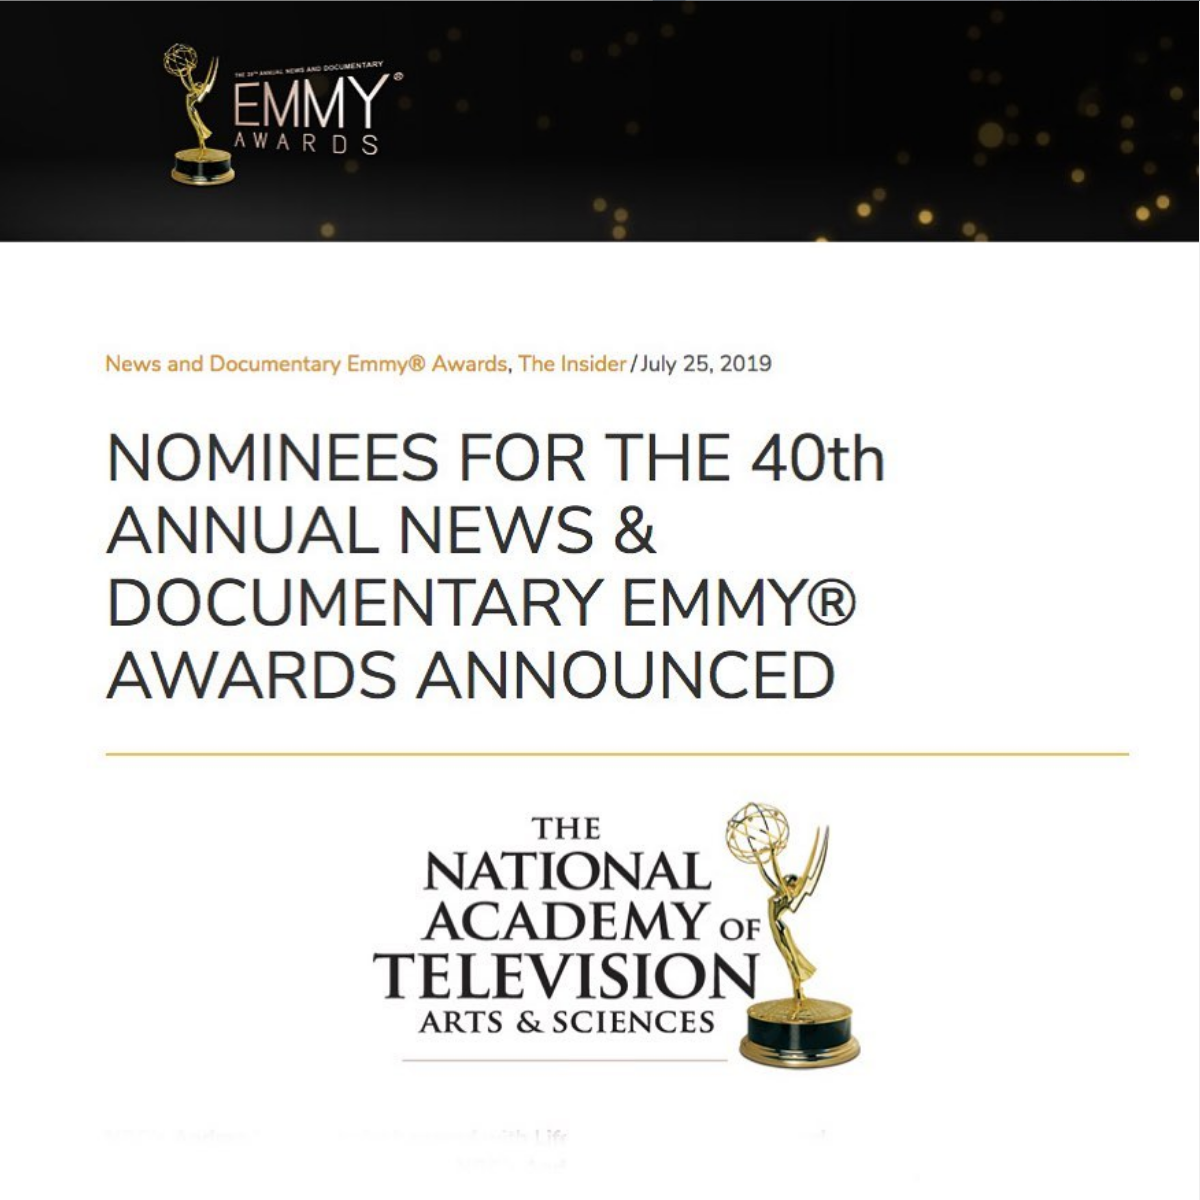 Emmy Awards will take place on September 26th, 2019!